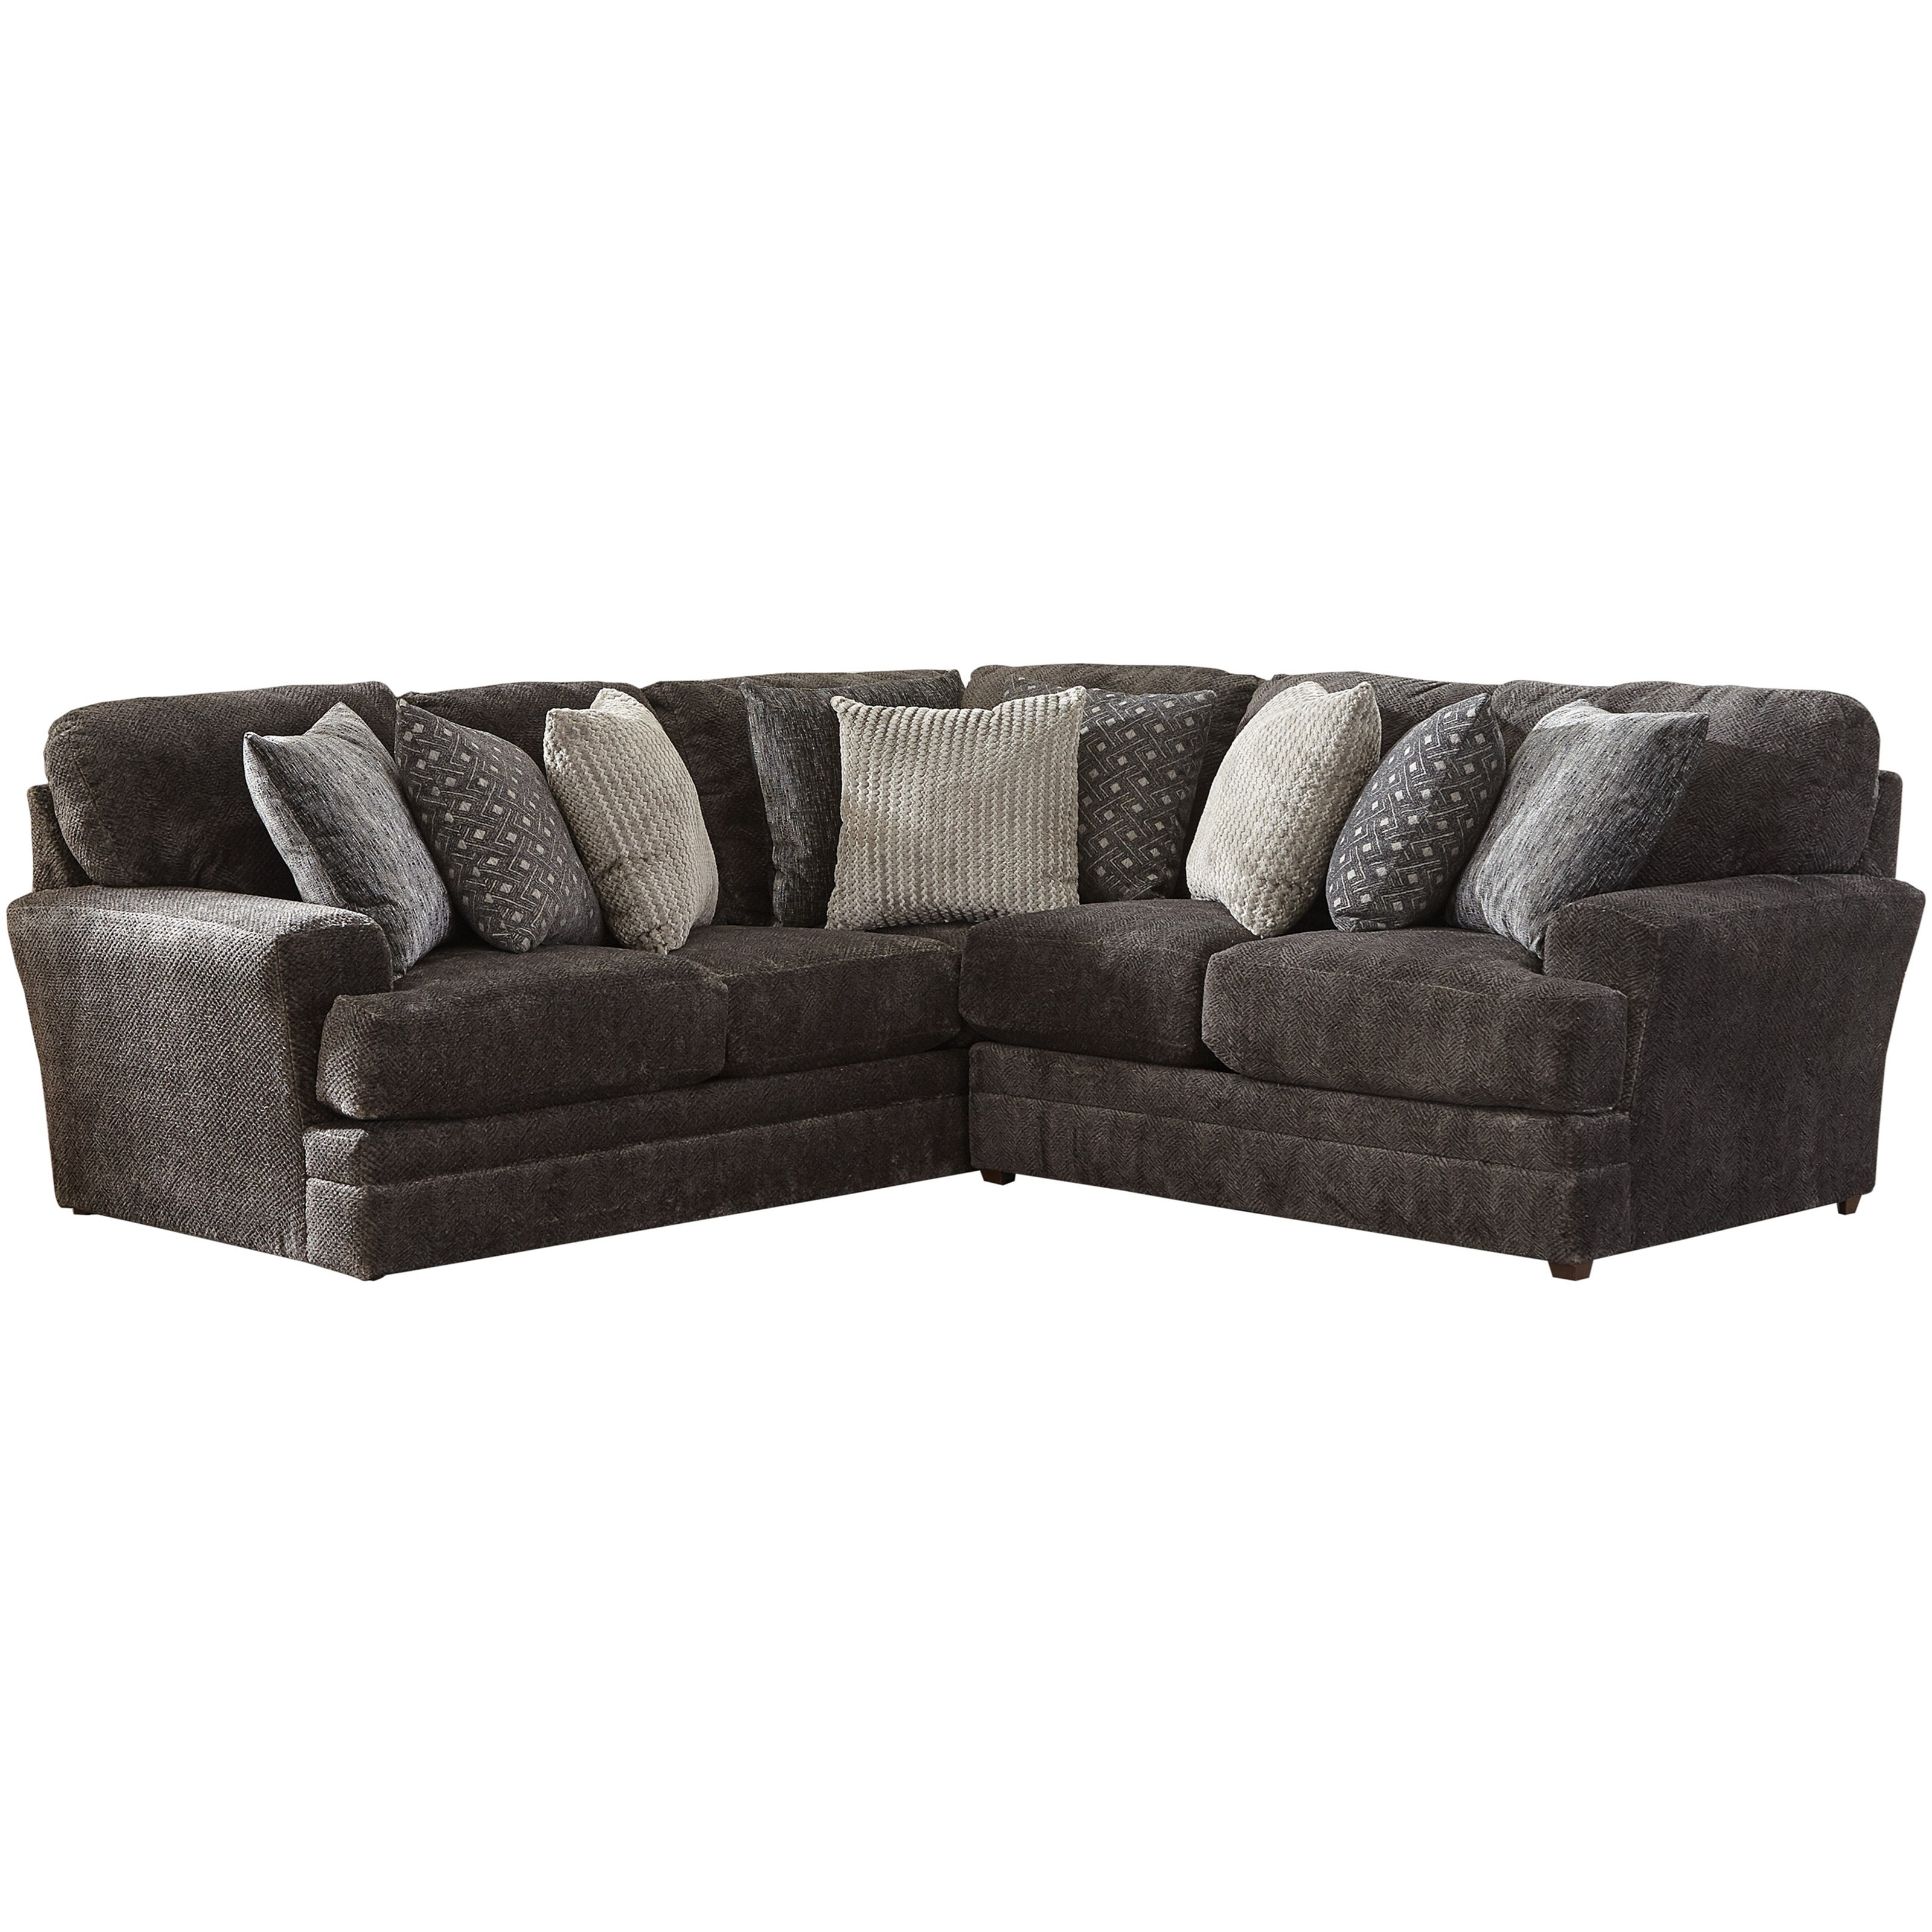 Mammoth 2 Piece Sectional by Jackson Furniture at Gill Brothers Furniture